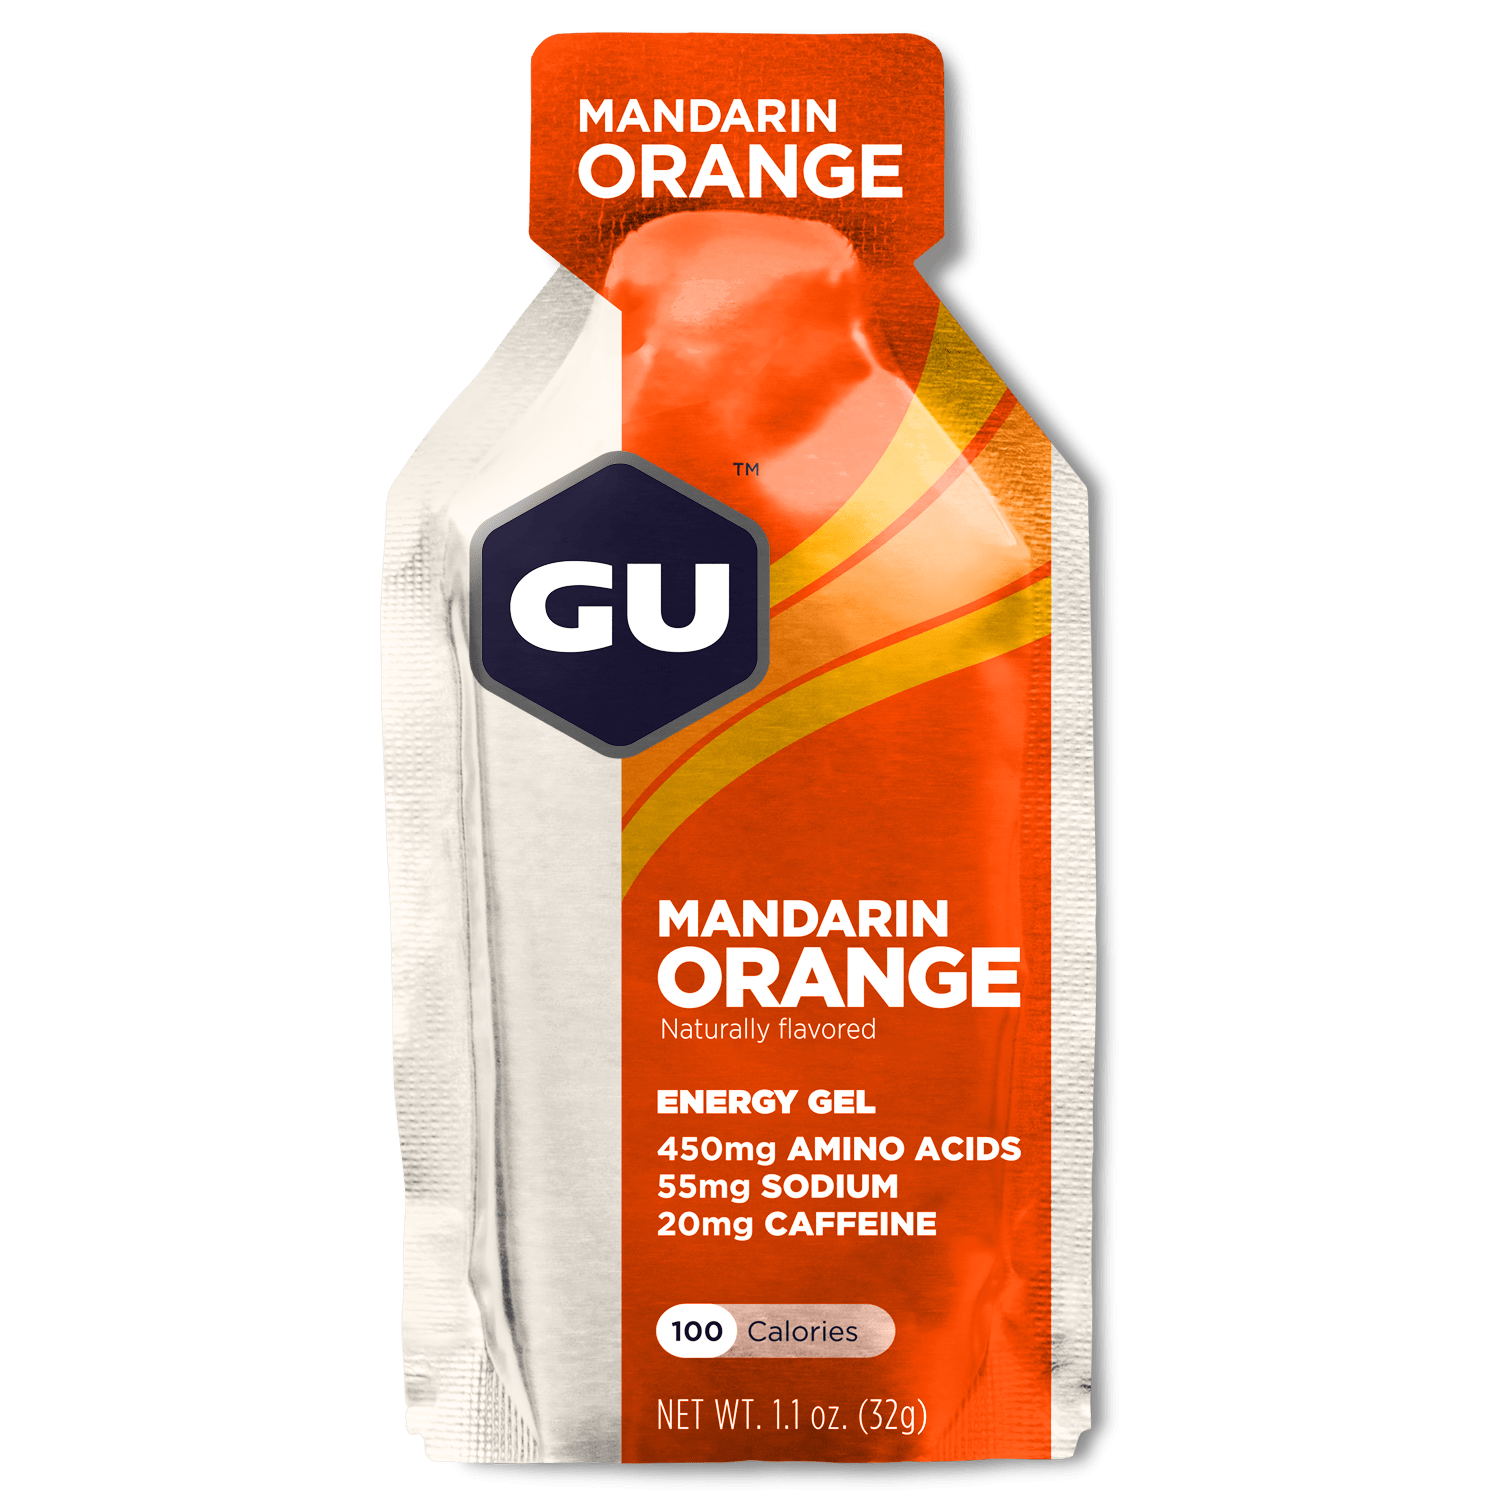 GU Sports Nutrition Mandarin Orange / Single Pack GU Original Sports Nutrition Energy Gel - Various Flavors